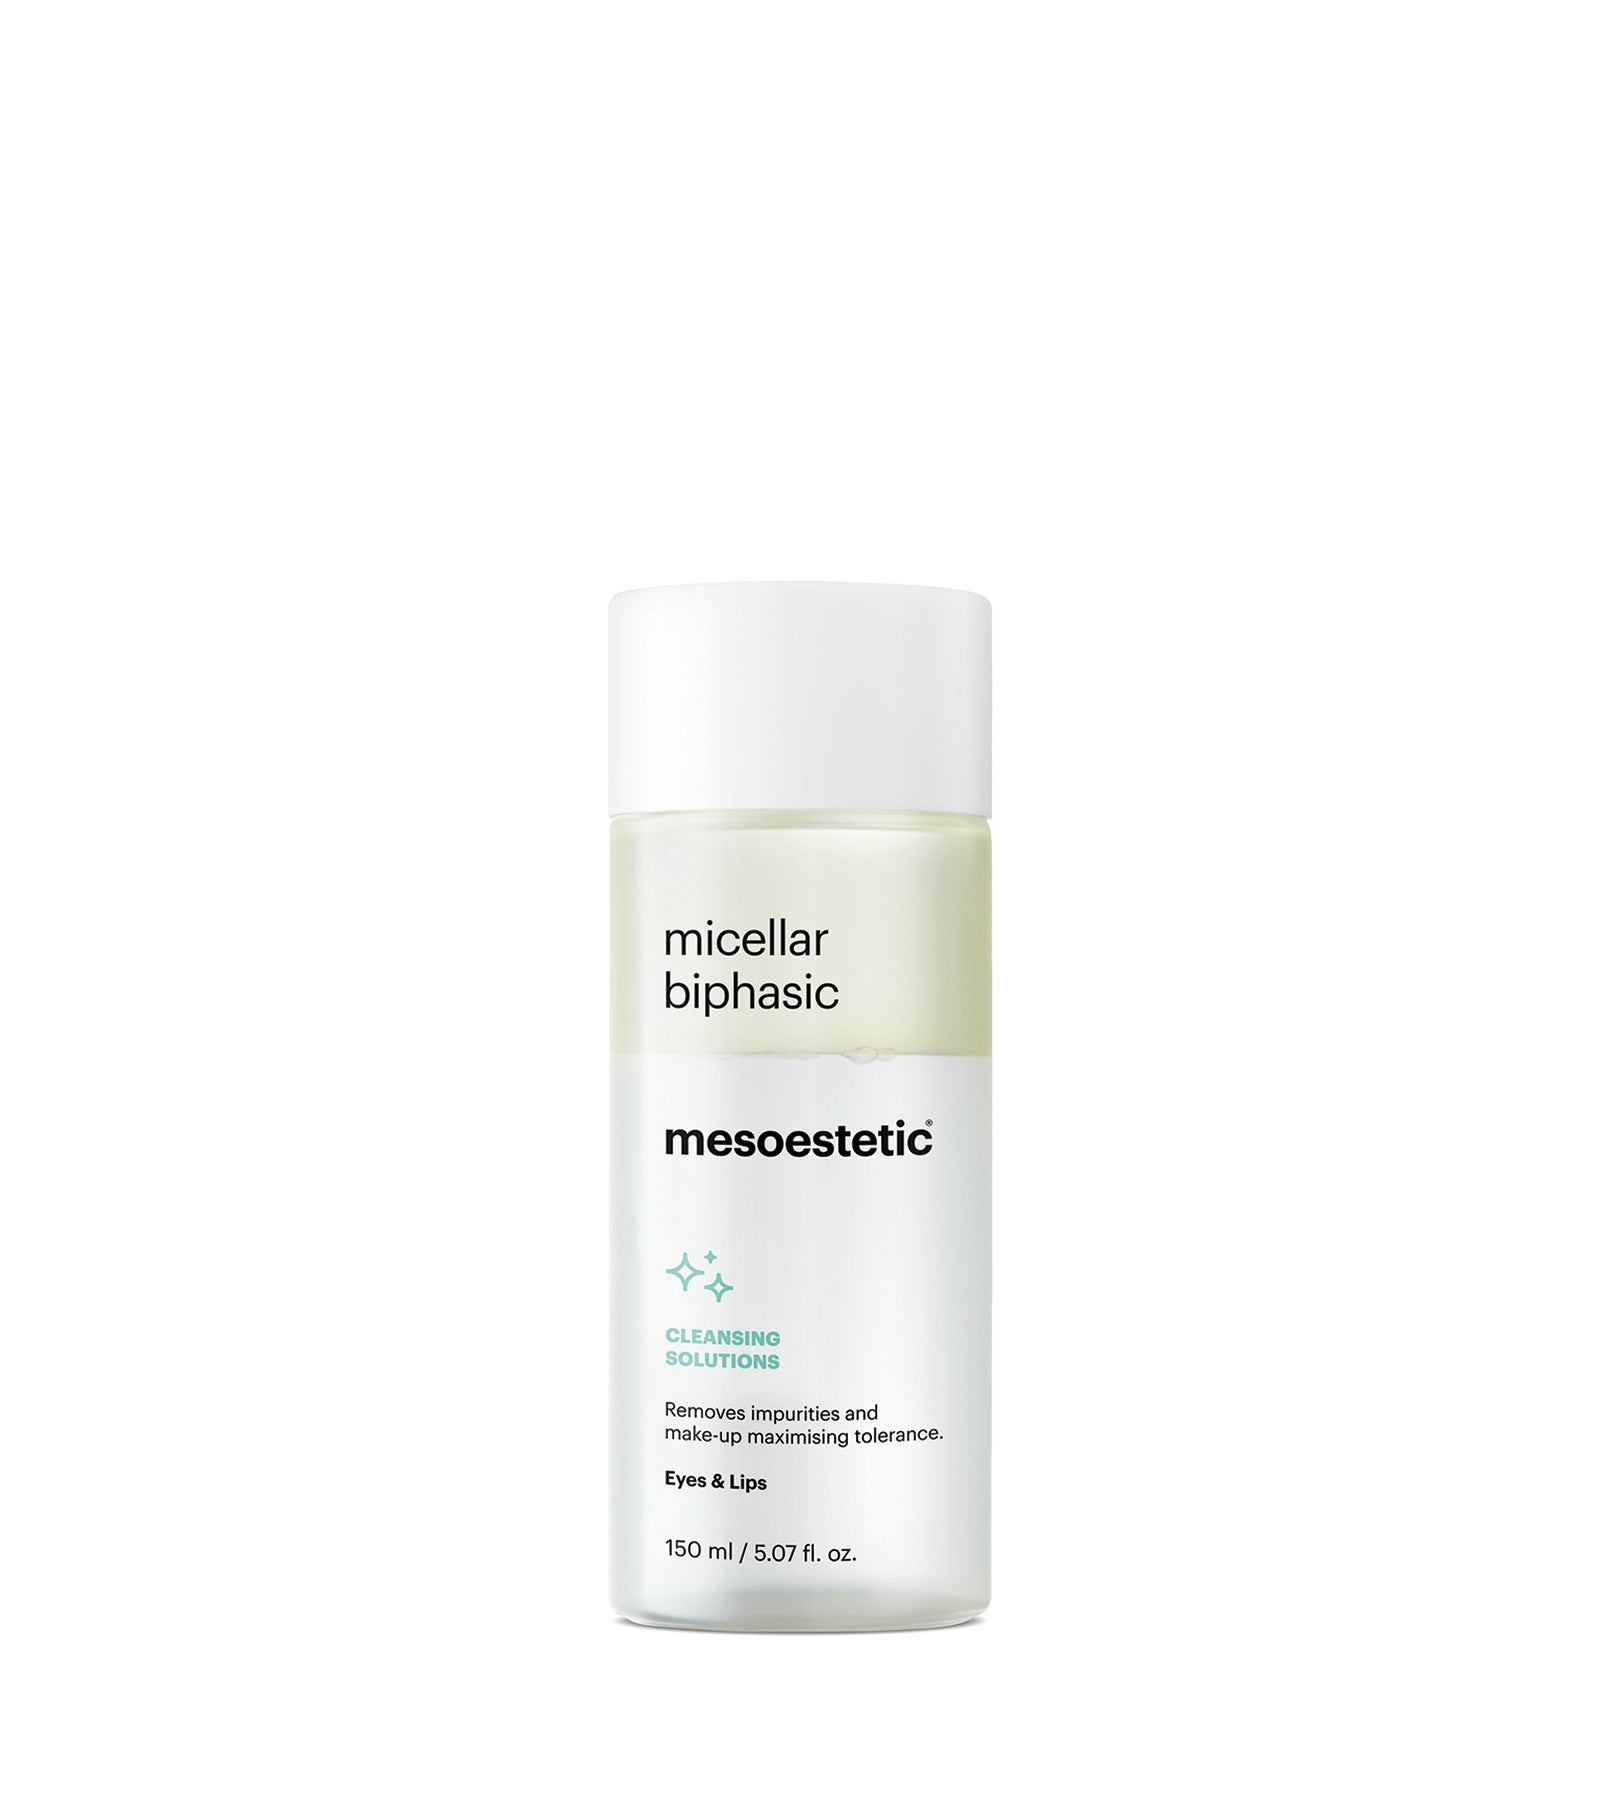 Micellar Biphasic - 150ml